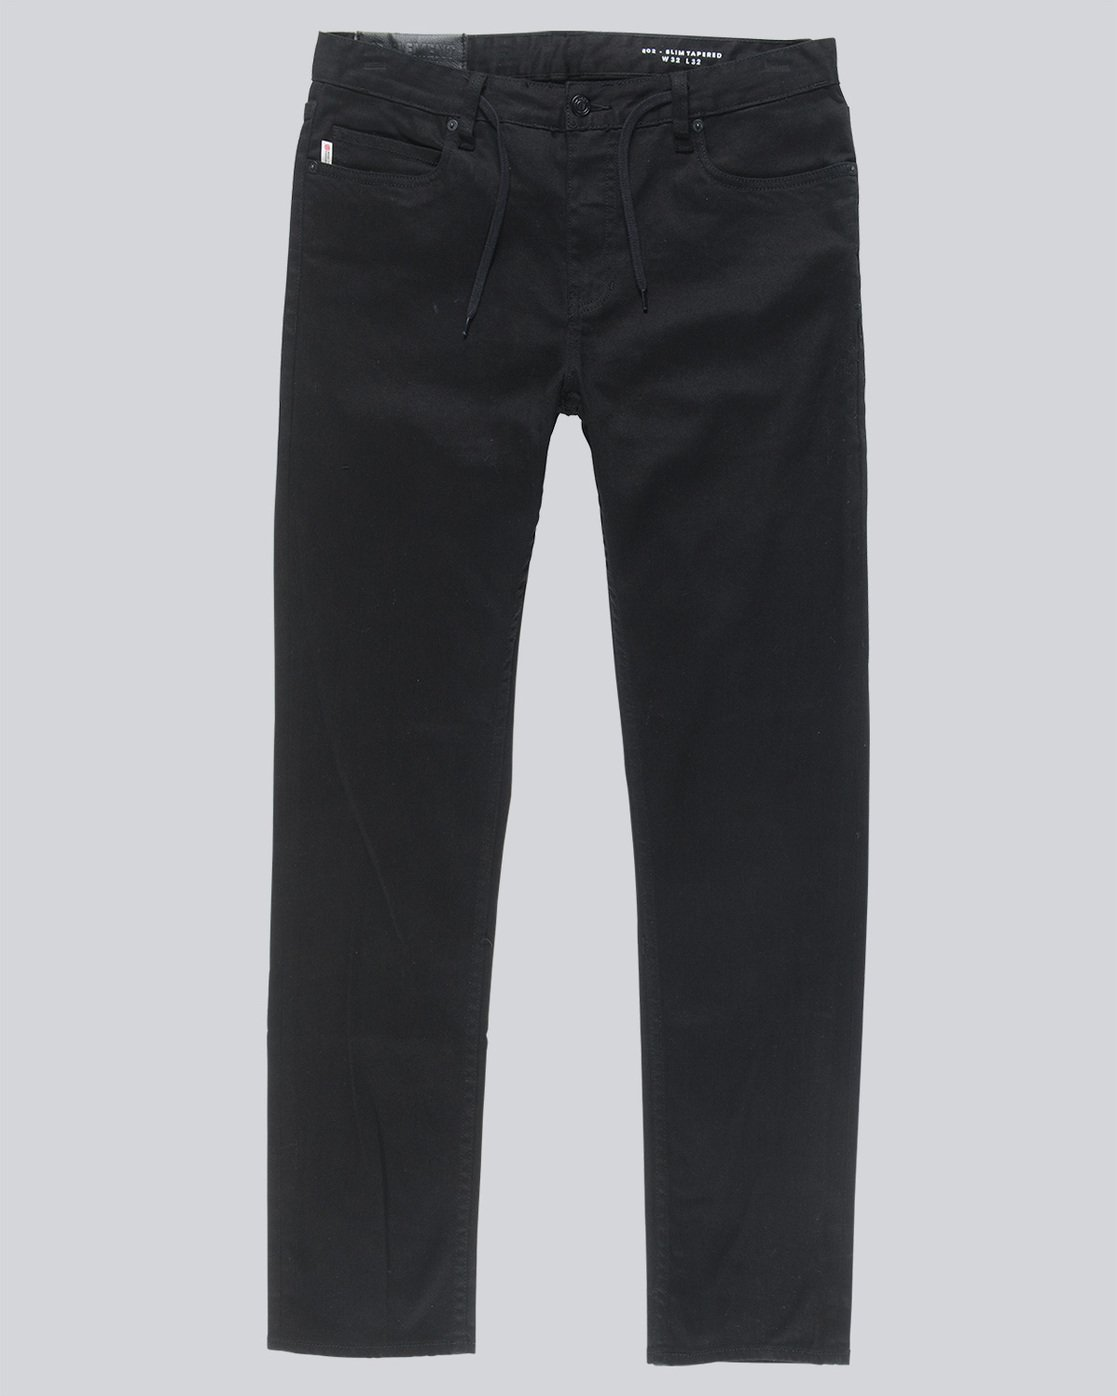 0 E02 Color Jean Black M393LE2C Element